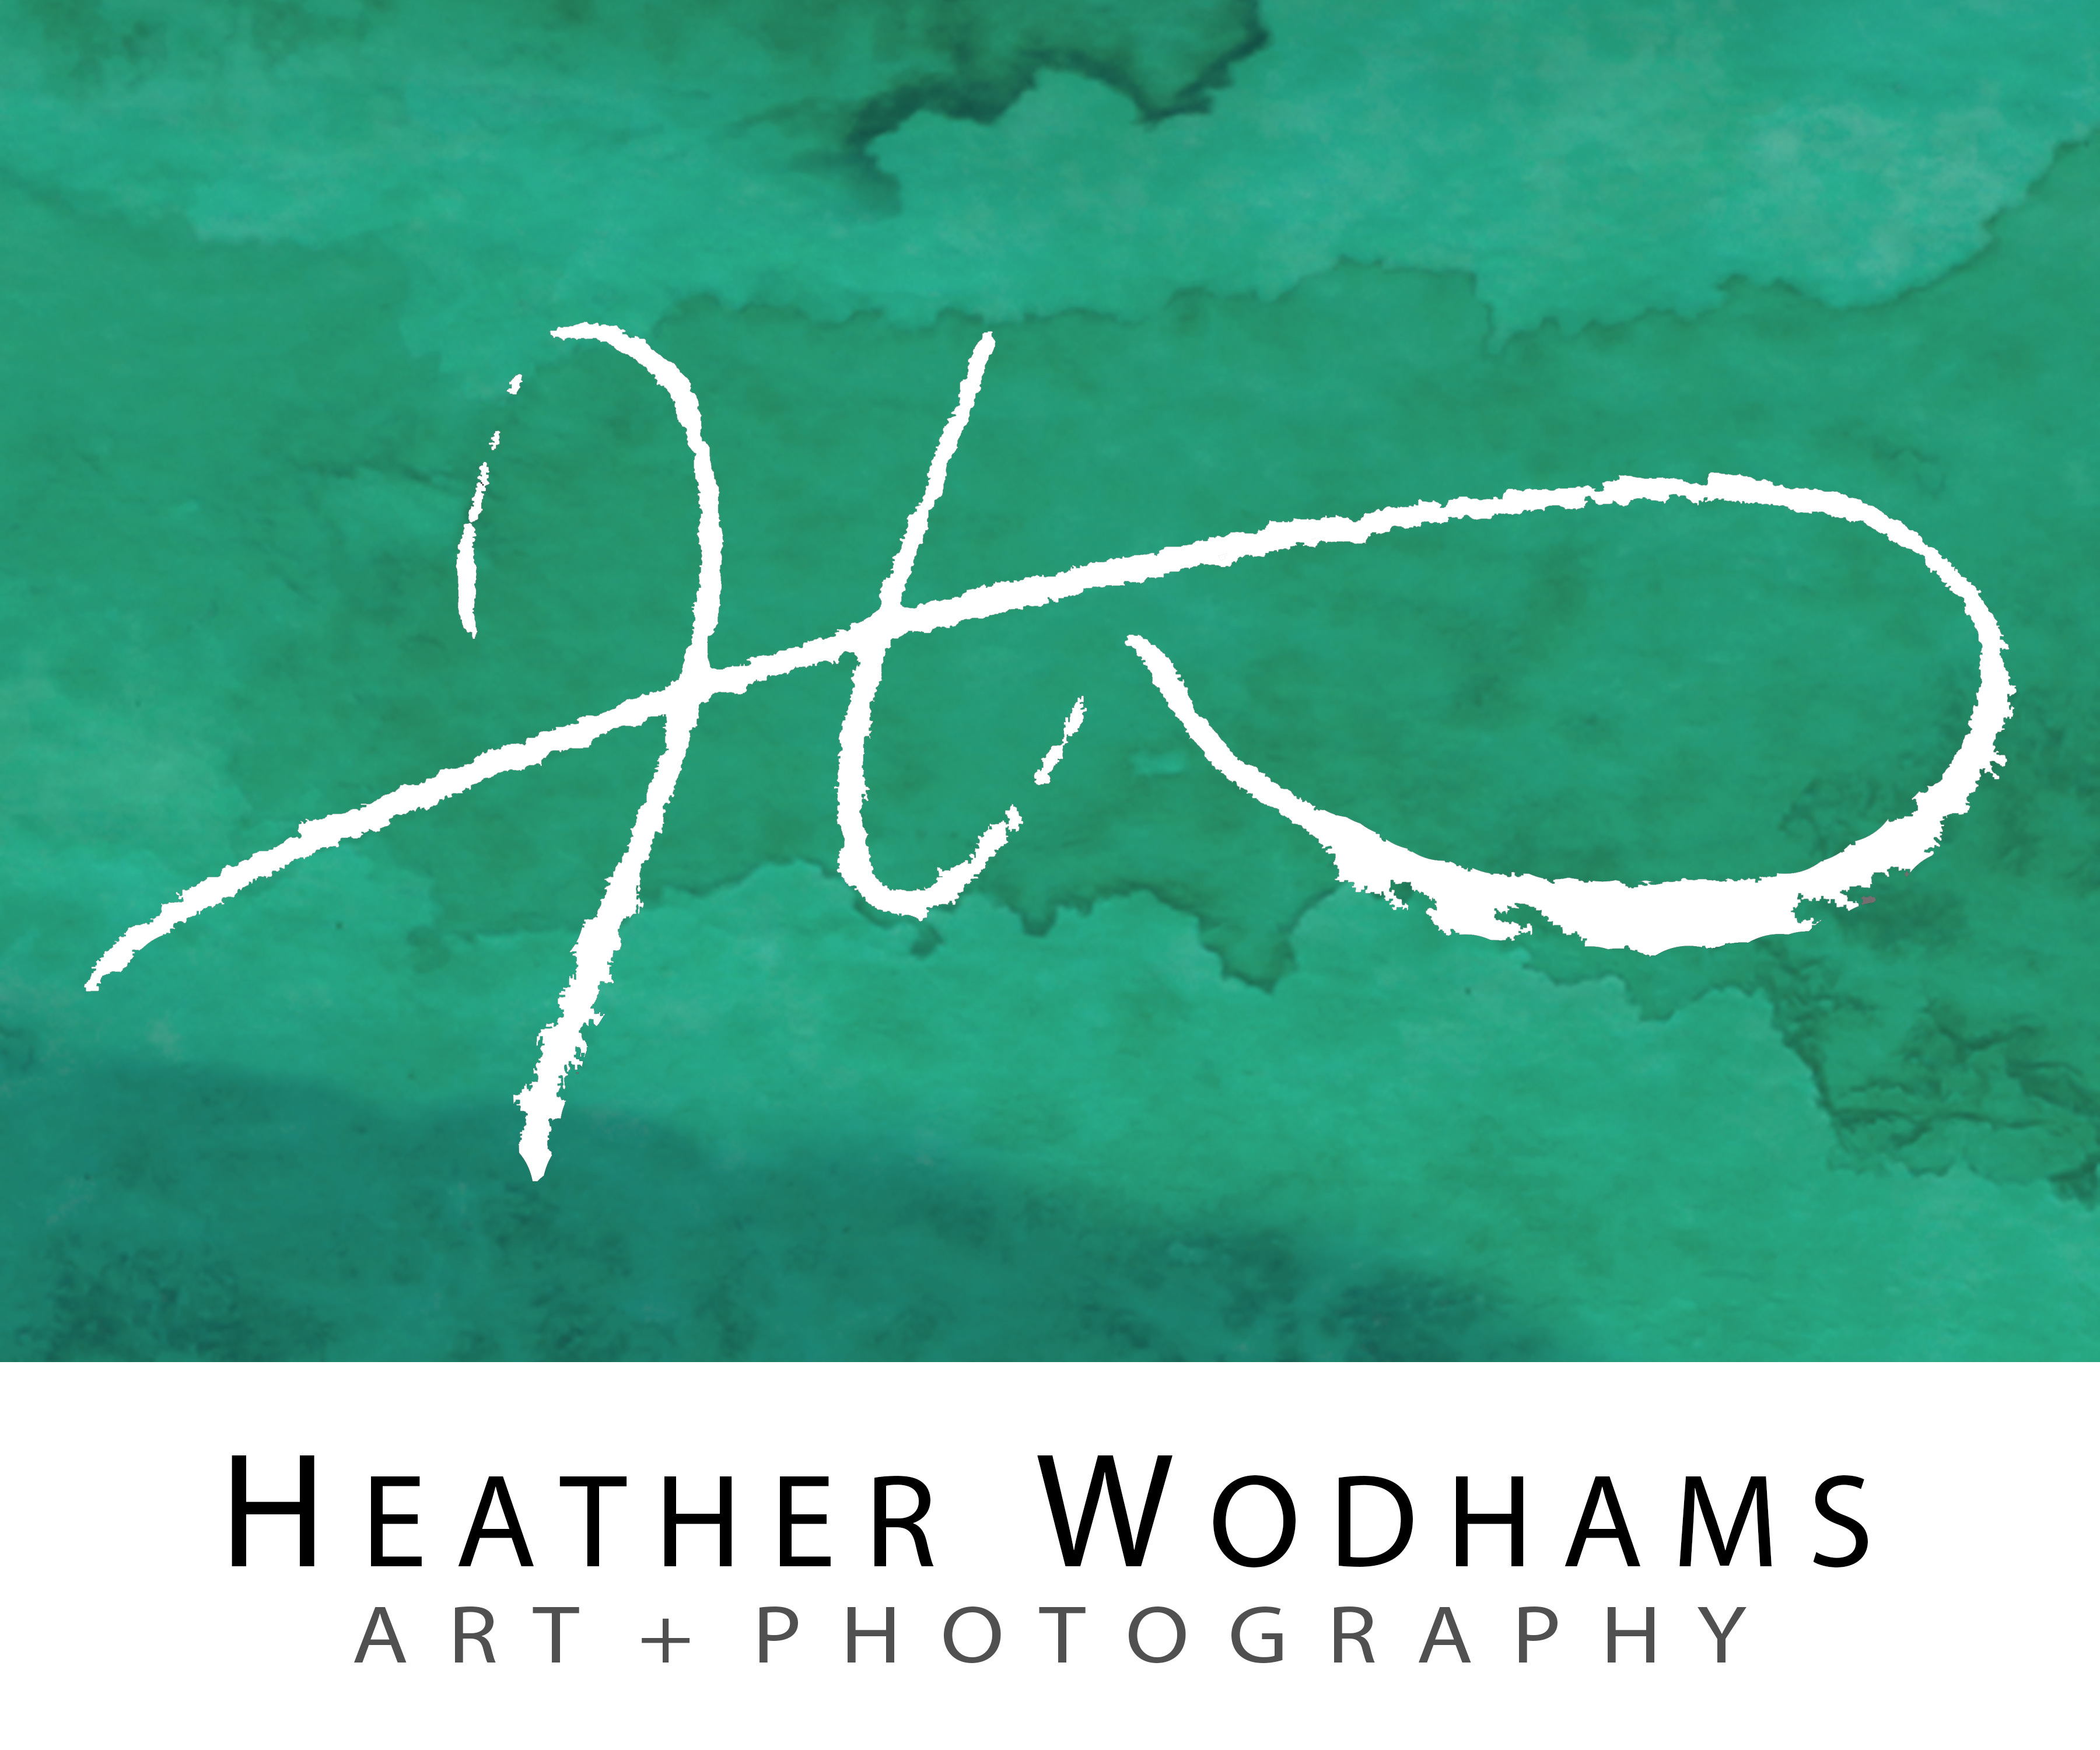 Heather Wodhams